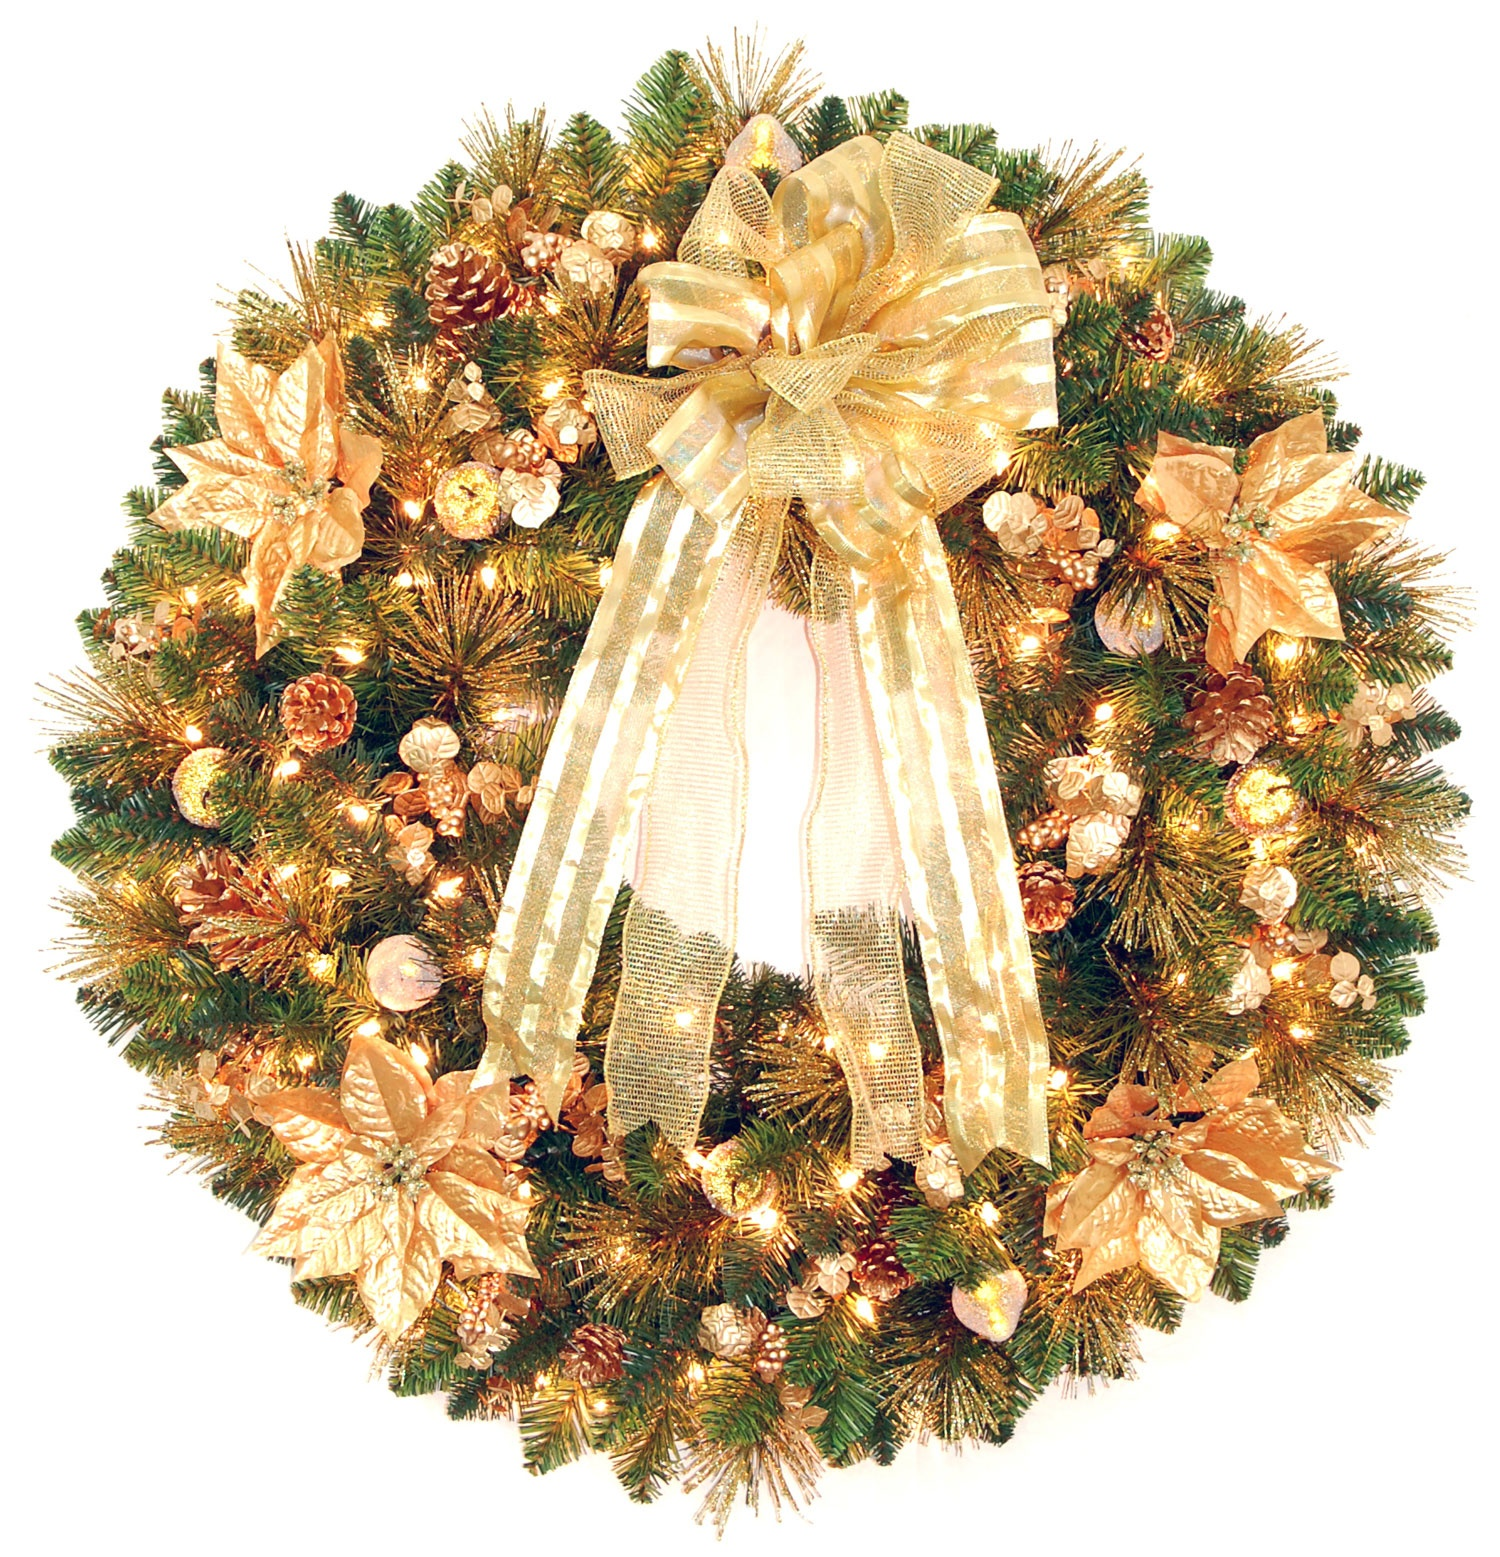 Decorative Wreaths Harvest Gold Deluxe Prelit Christmas